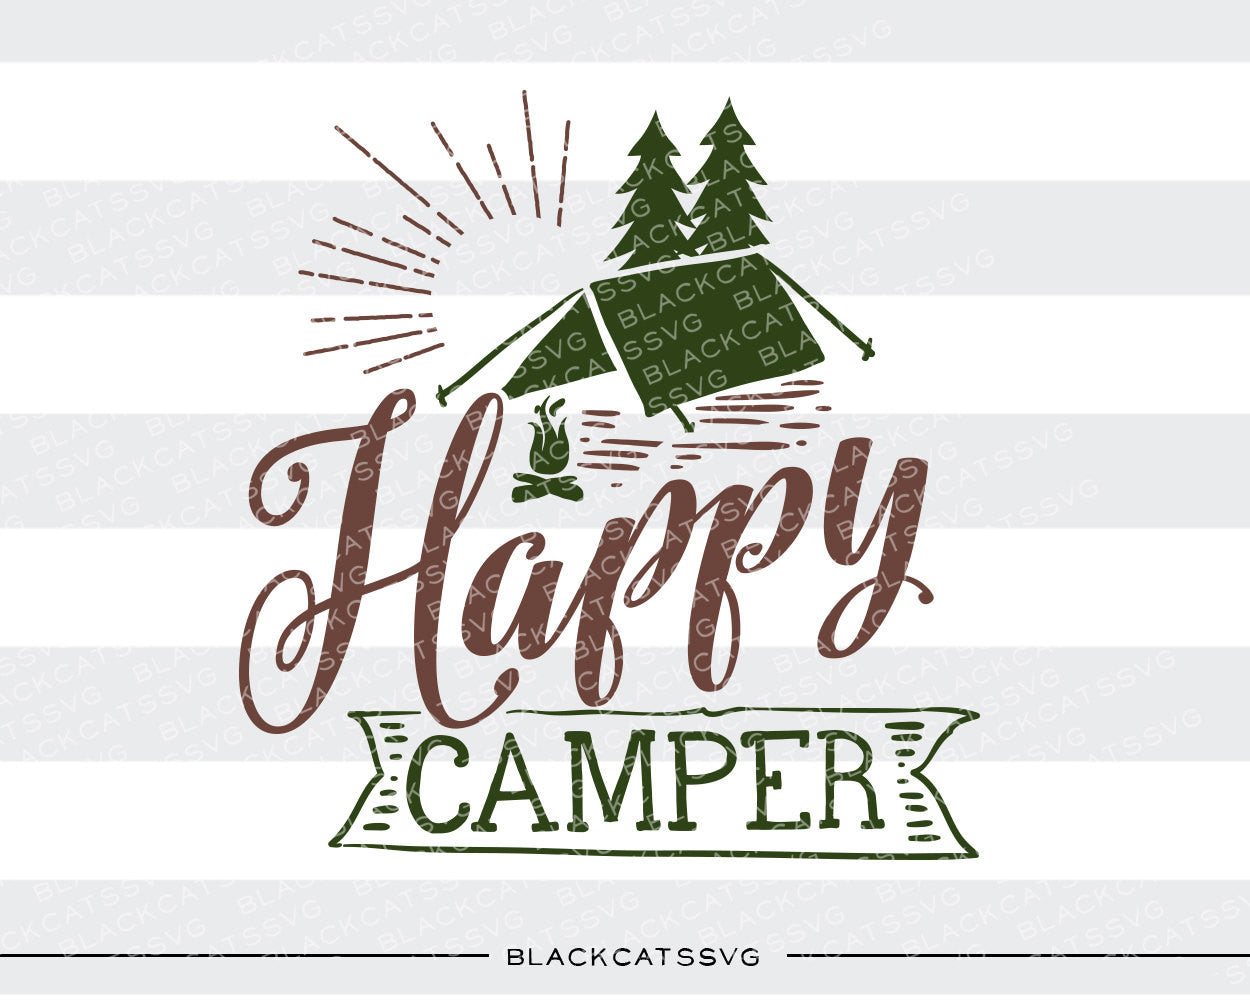 Camping Outdoors SVG File Cutting Clipart In Svg Eps Dxf